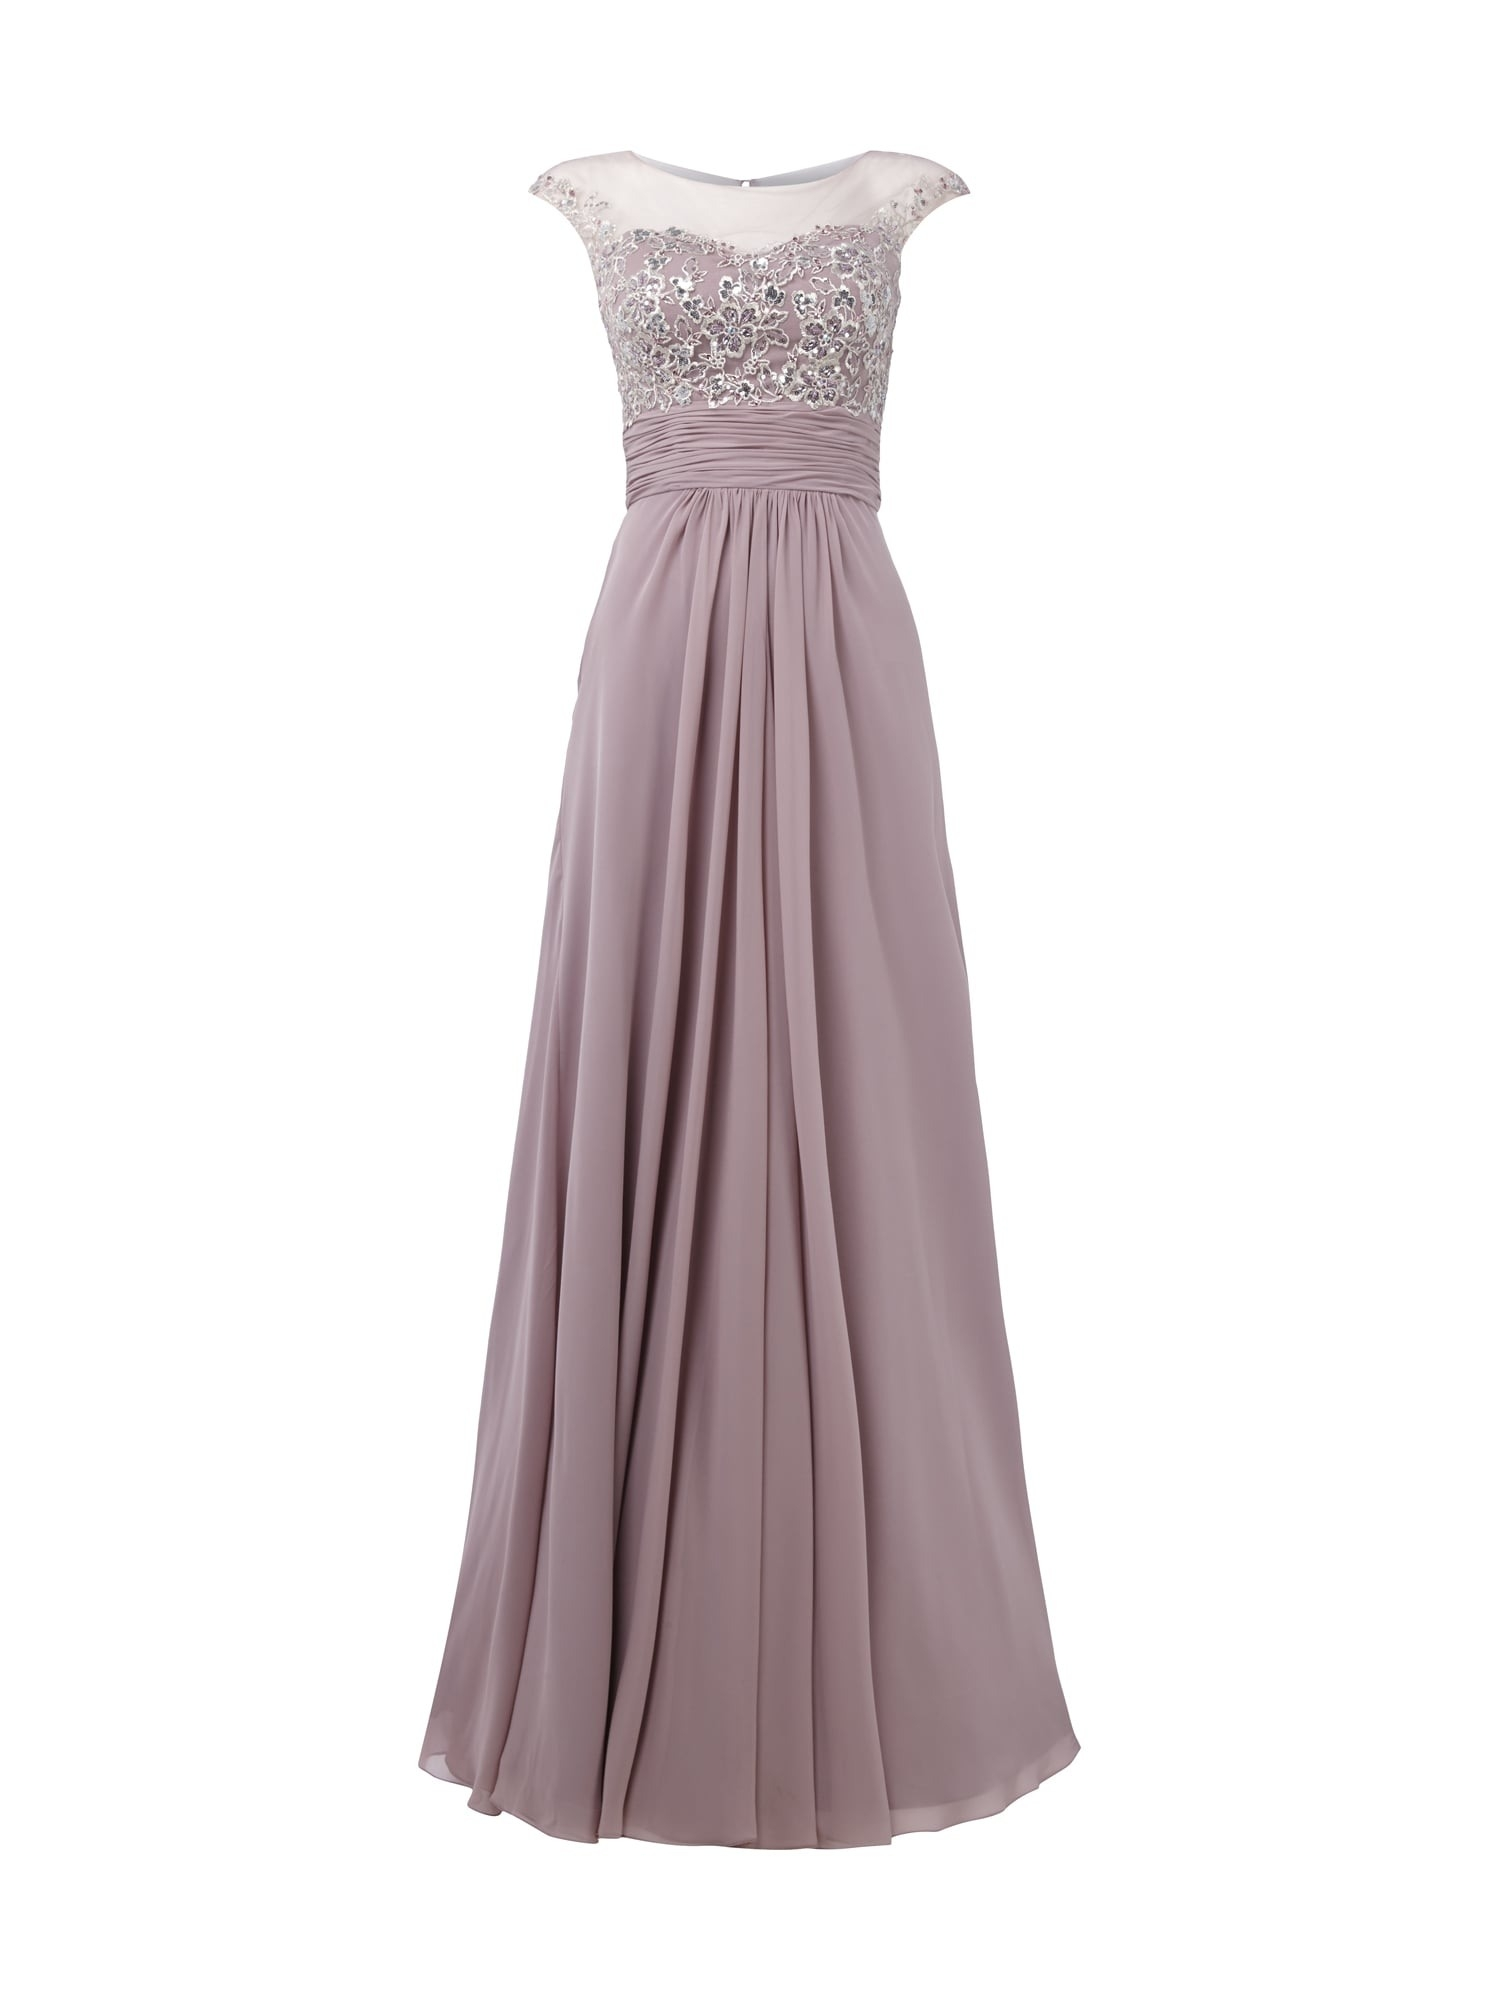 Formal Fantastisch Abendkleid Lang Taupe Stylish13 Luxus Abendkleid Lang Taupe für 2019